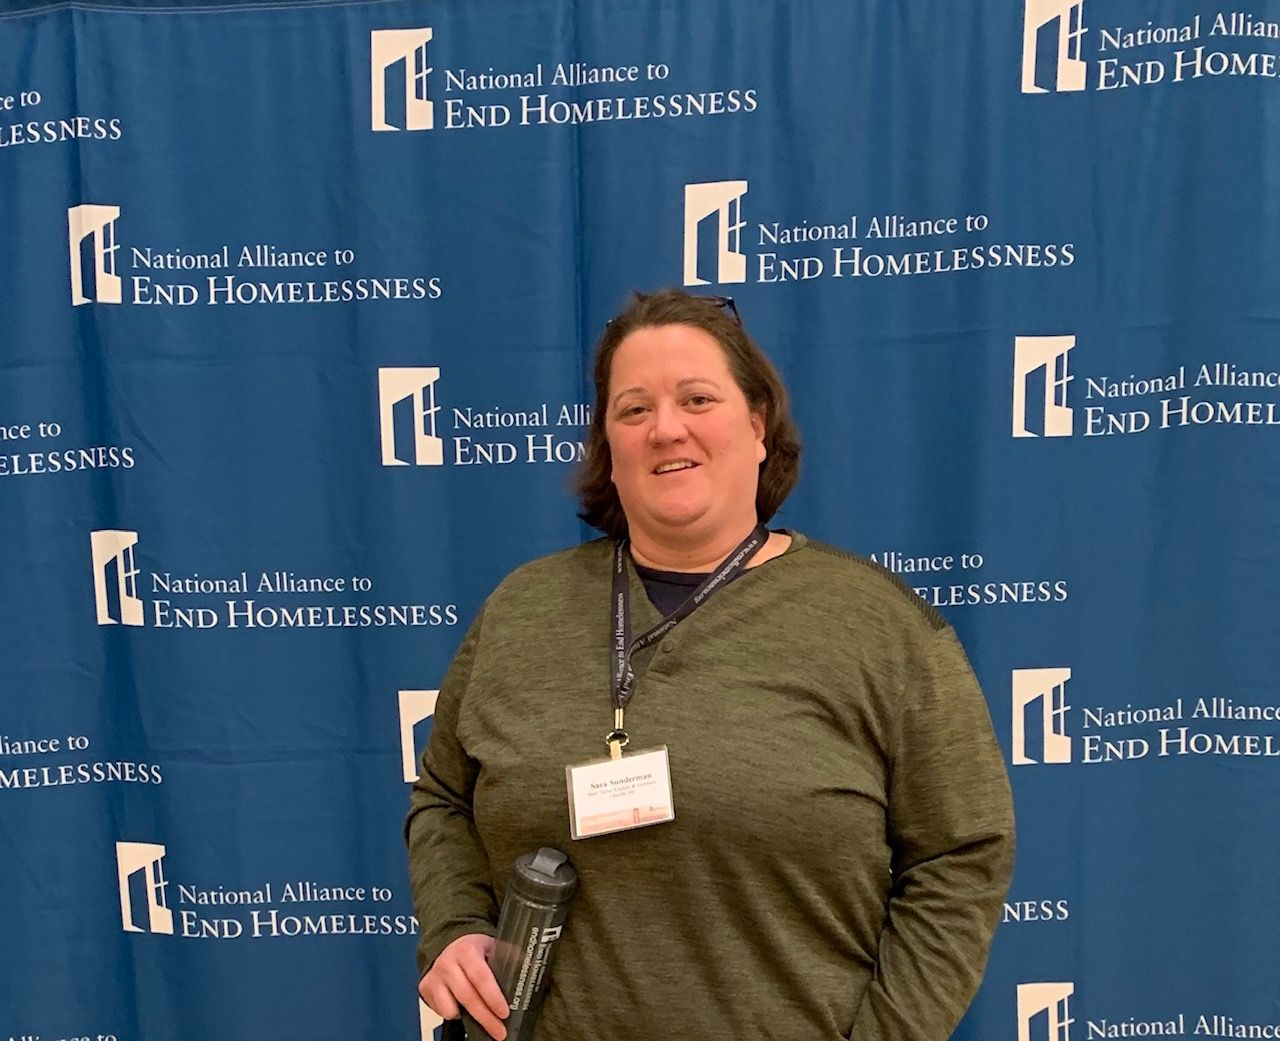 Outreach Coordinator Attends National Alliance to End Homelessness Conference